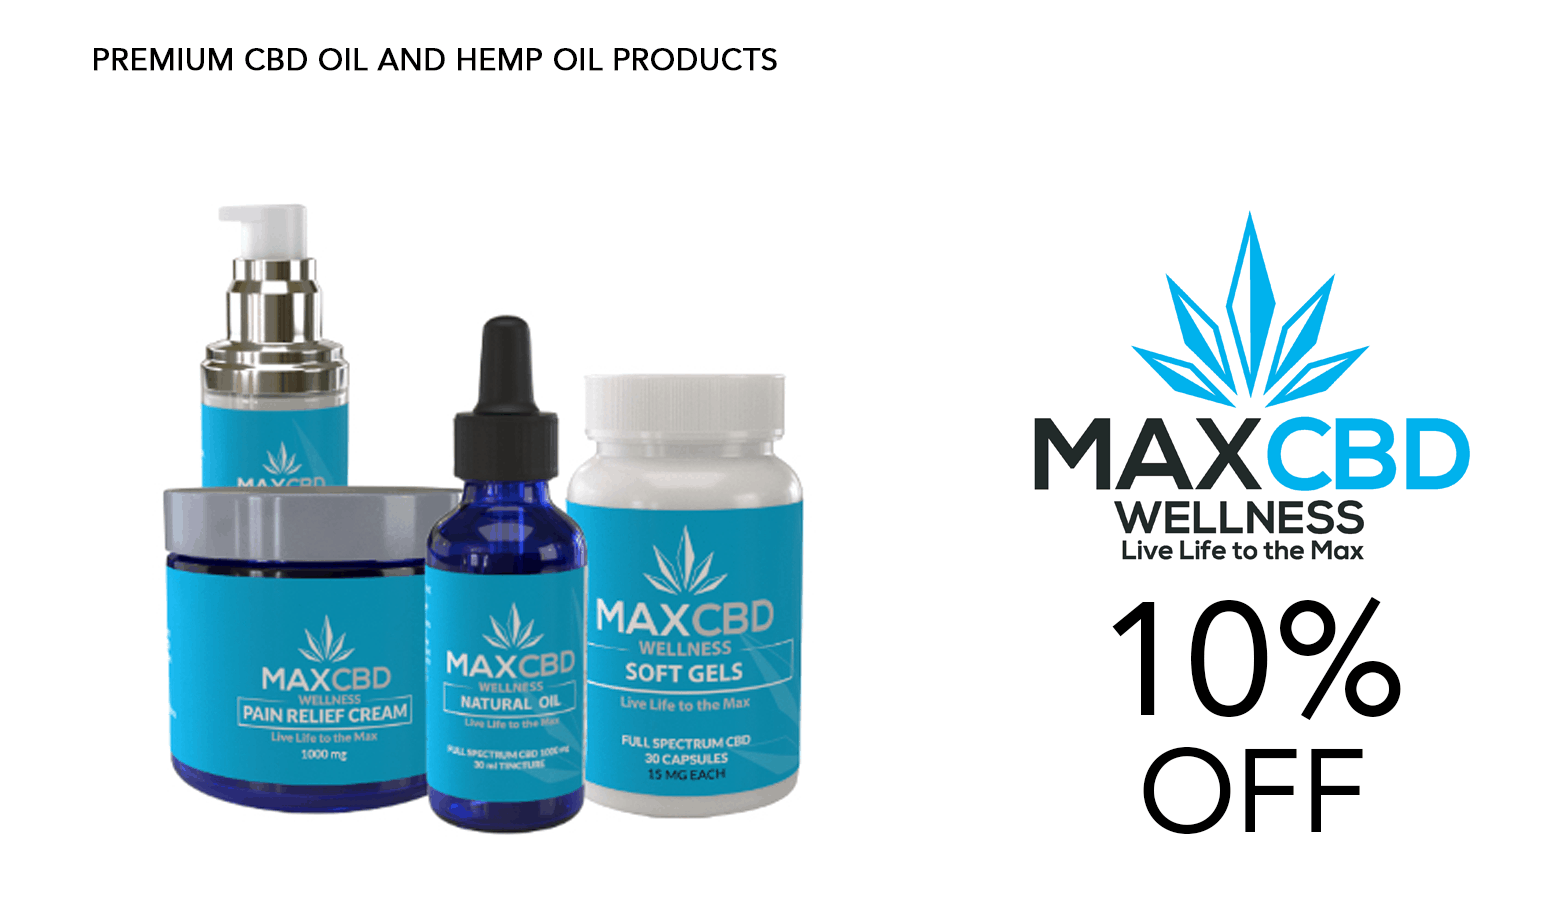 MaxCBD Wellness Coupon Code Promo